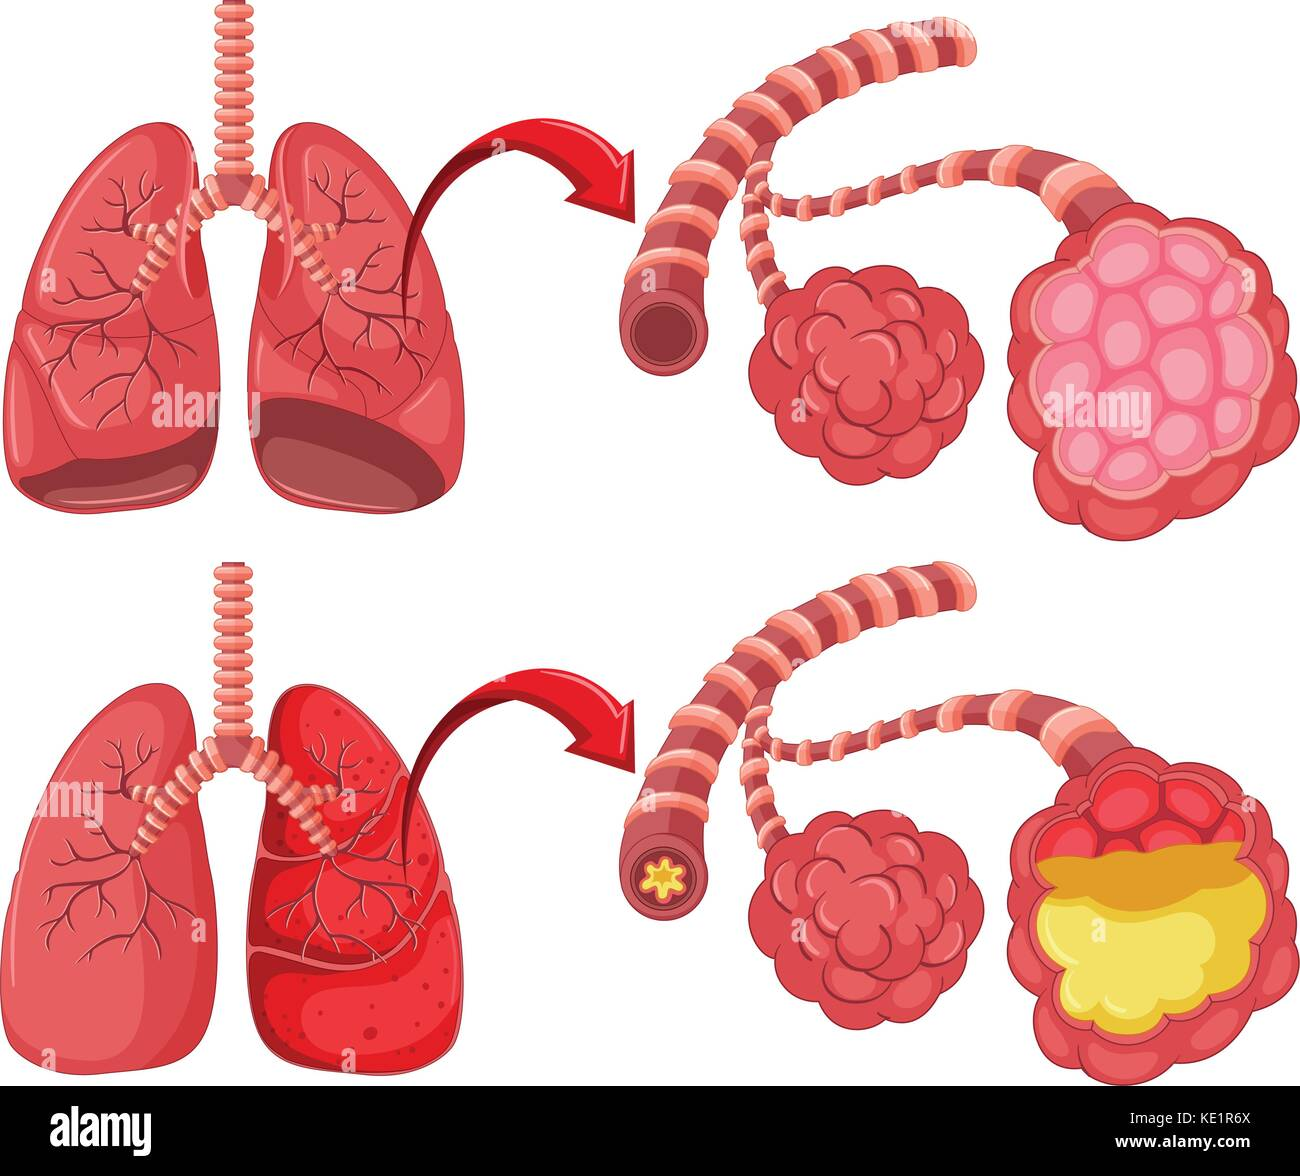 Human lungs with pneumonia illustration - Stock Image